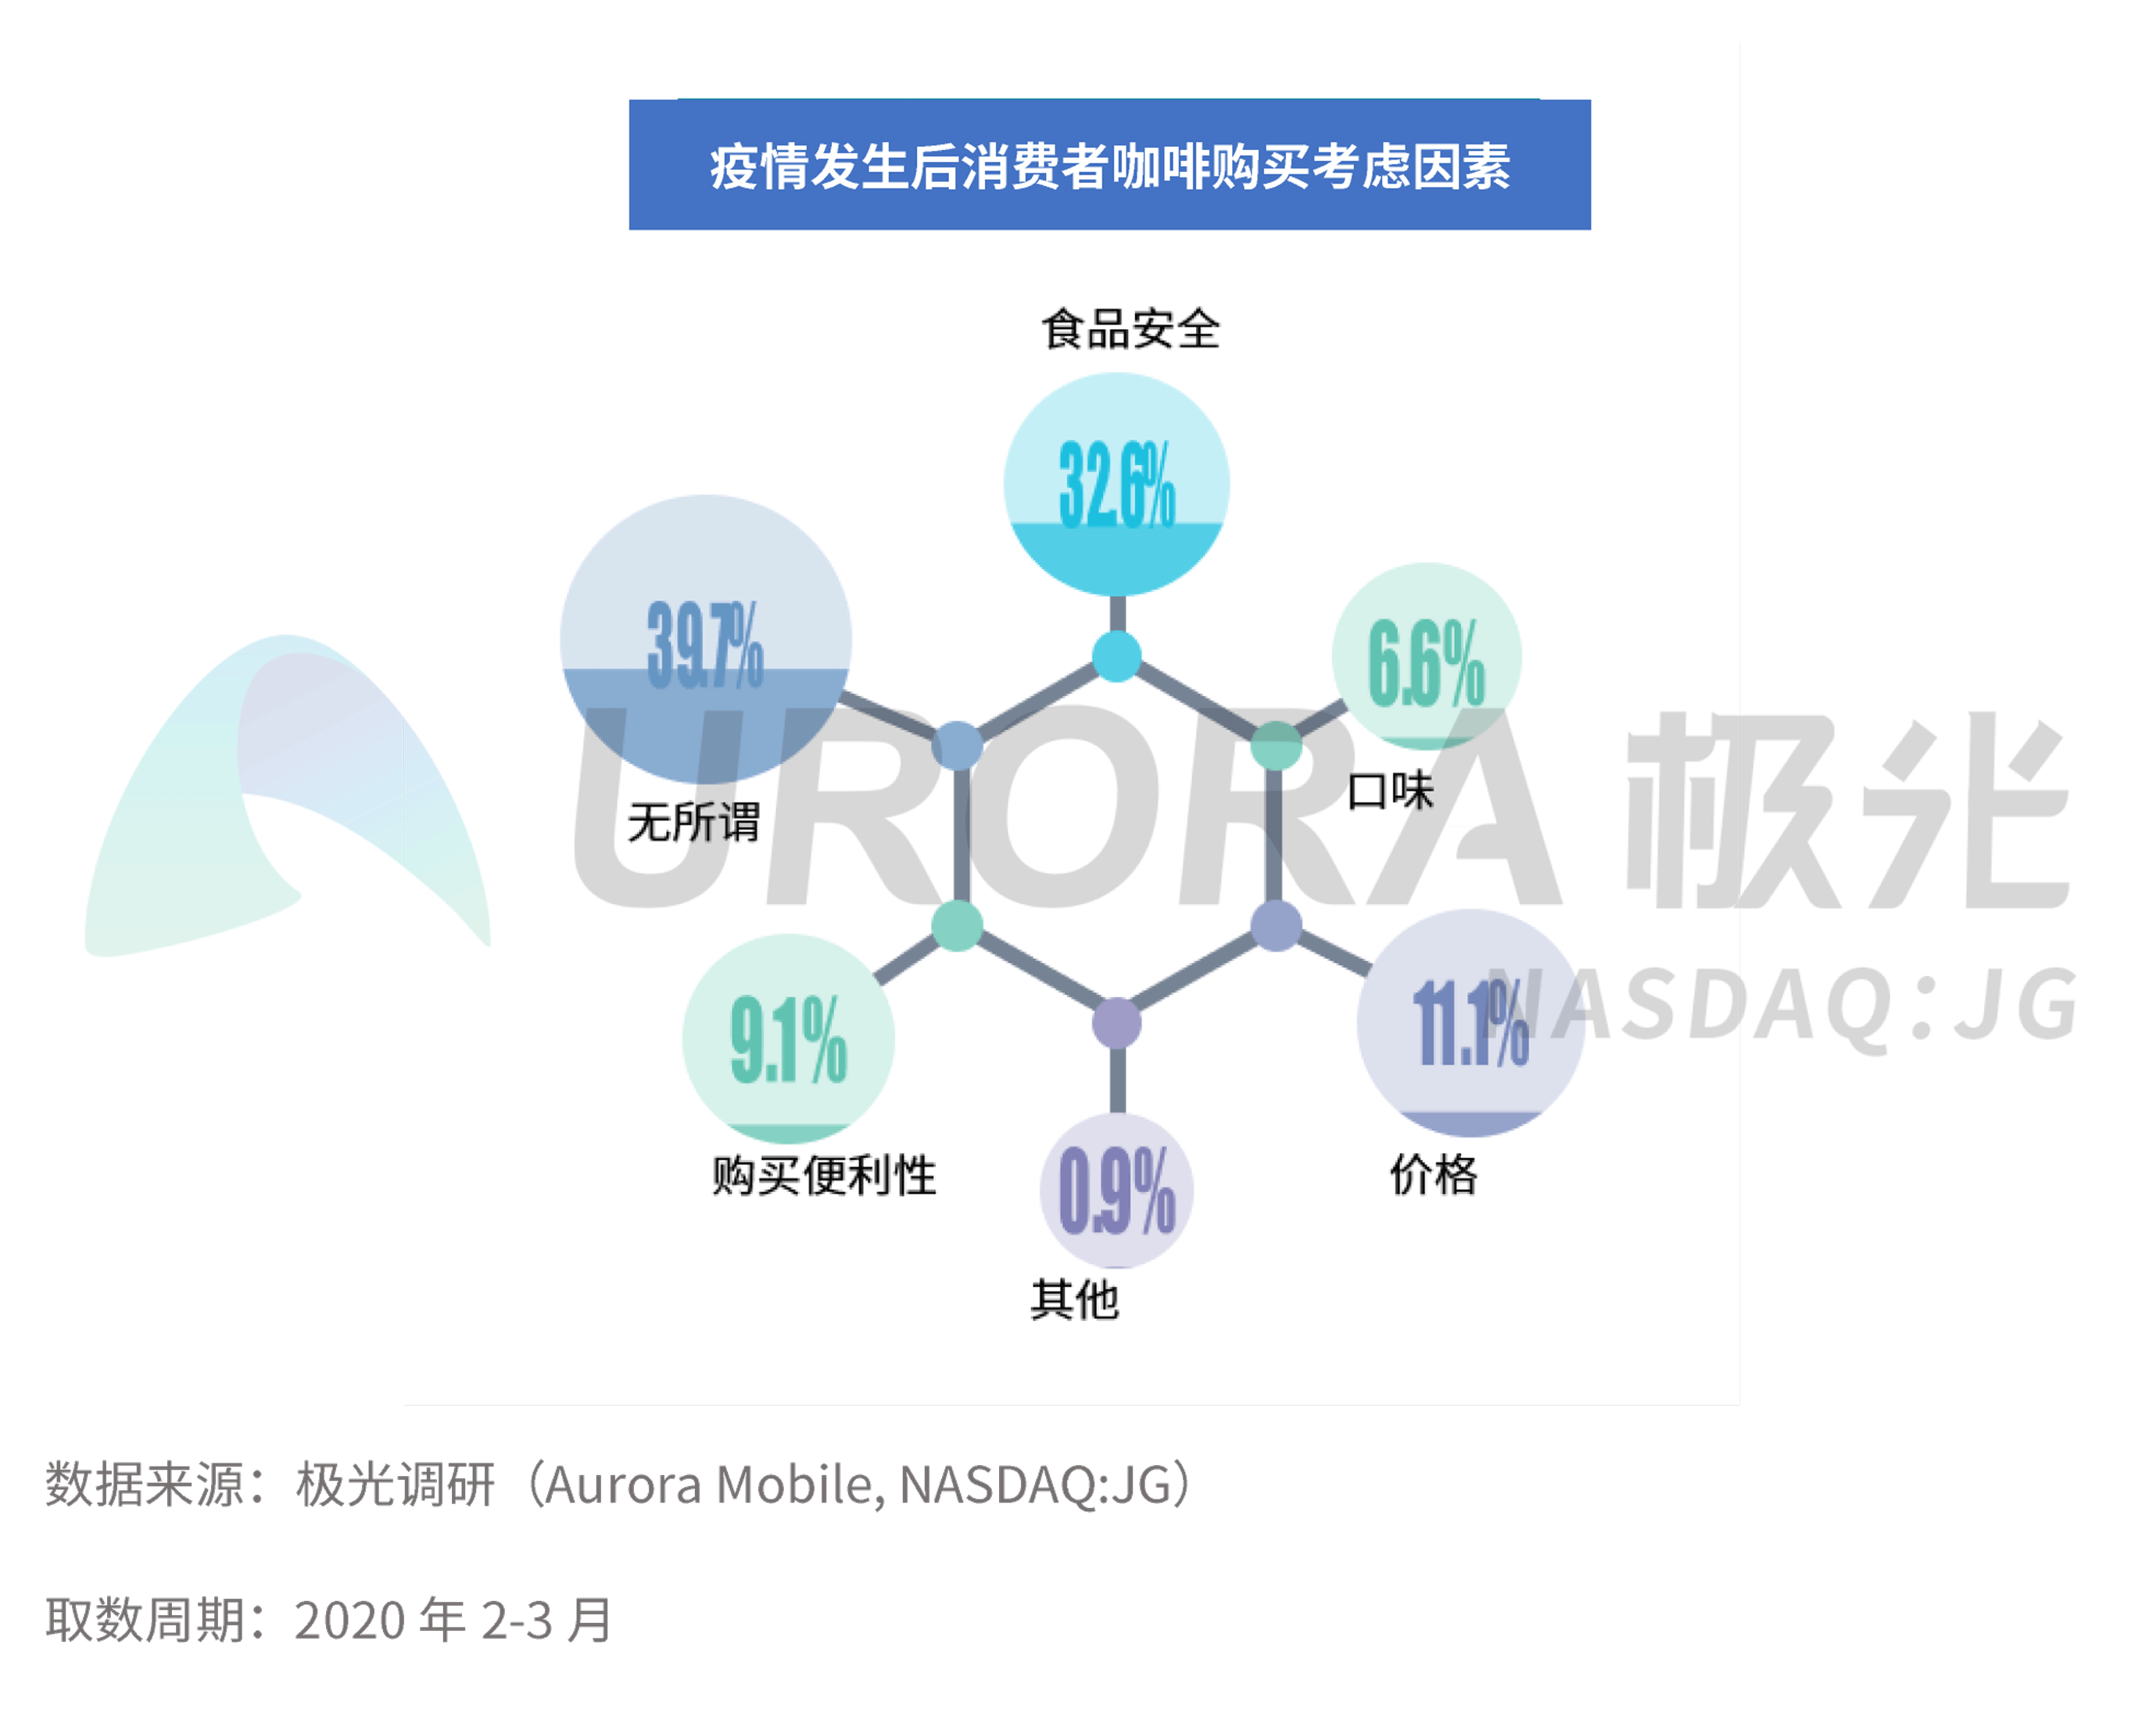 JIGUANG-疫情下中国咖啡消费市场洞察报告【定稿】pp-16.png